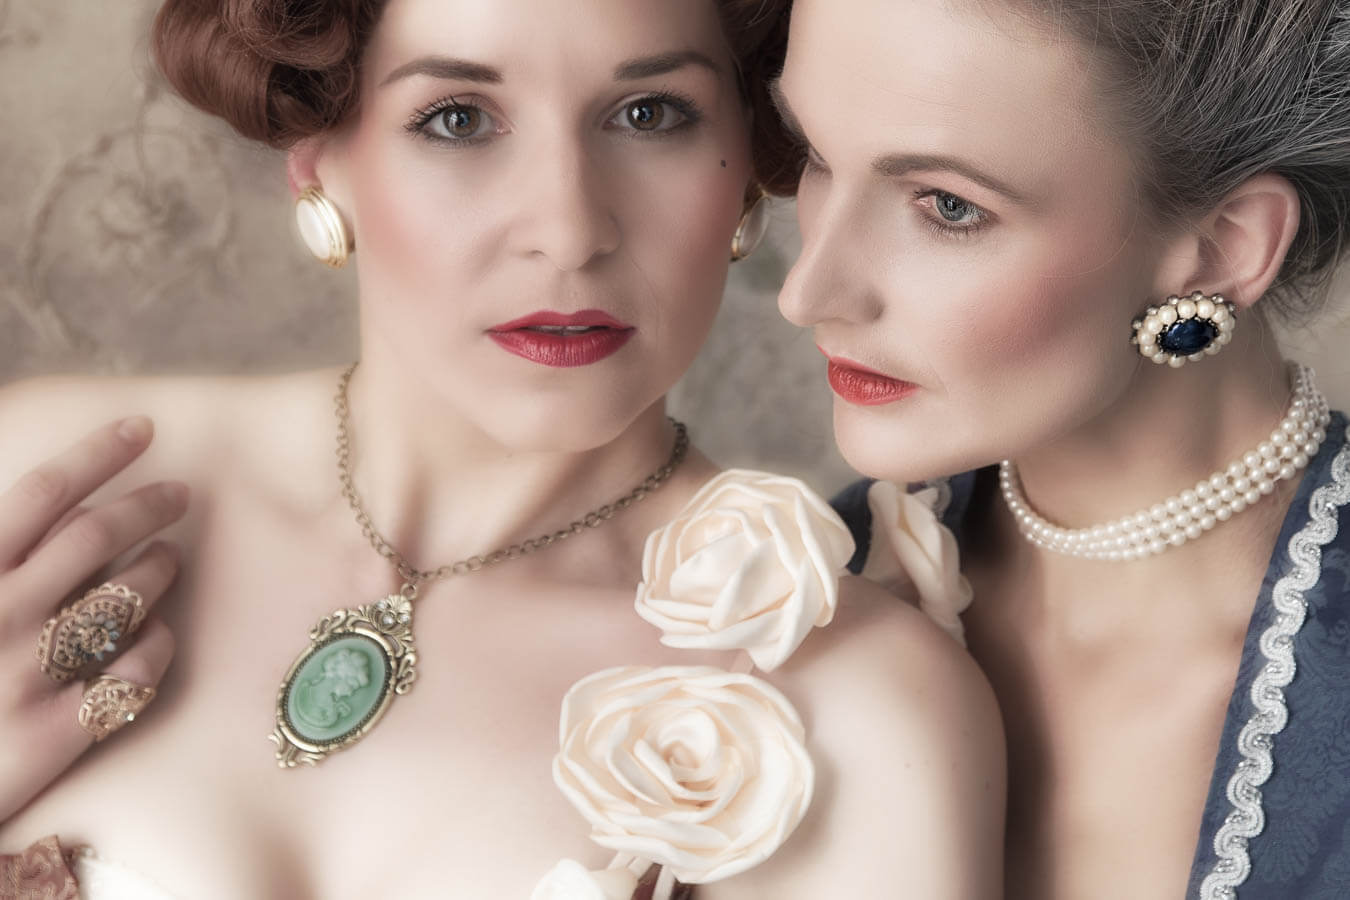 Fotostudio-Dresden-Barock-Shooting-Kleider-Haarschmuck-Frisur-Styling-Make up